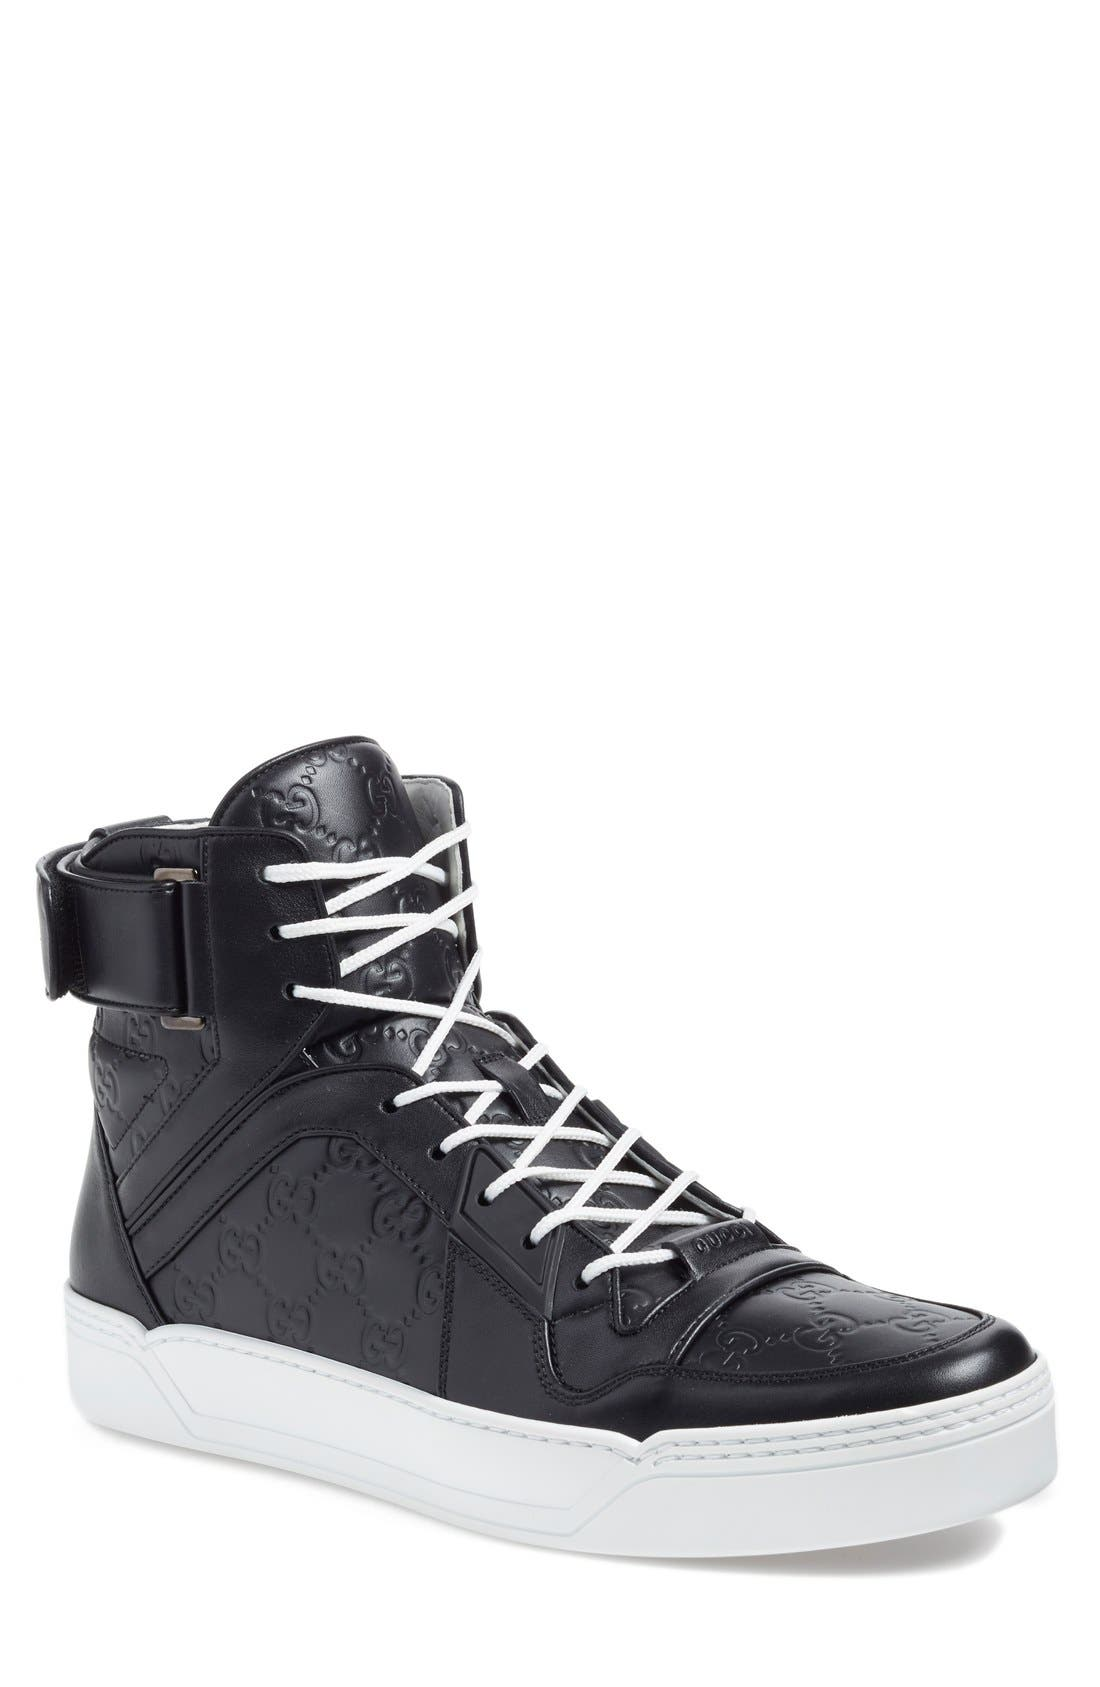 GUCCI 'New Basketball' High Top Sneaker, Main, color, 002